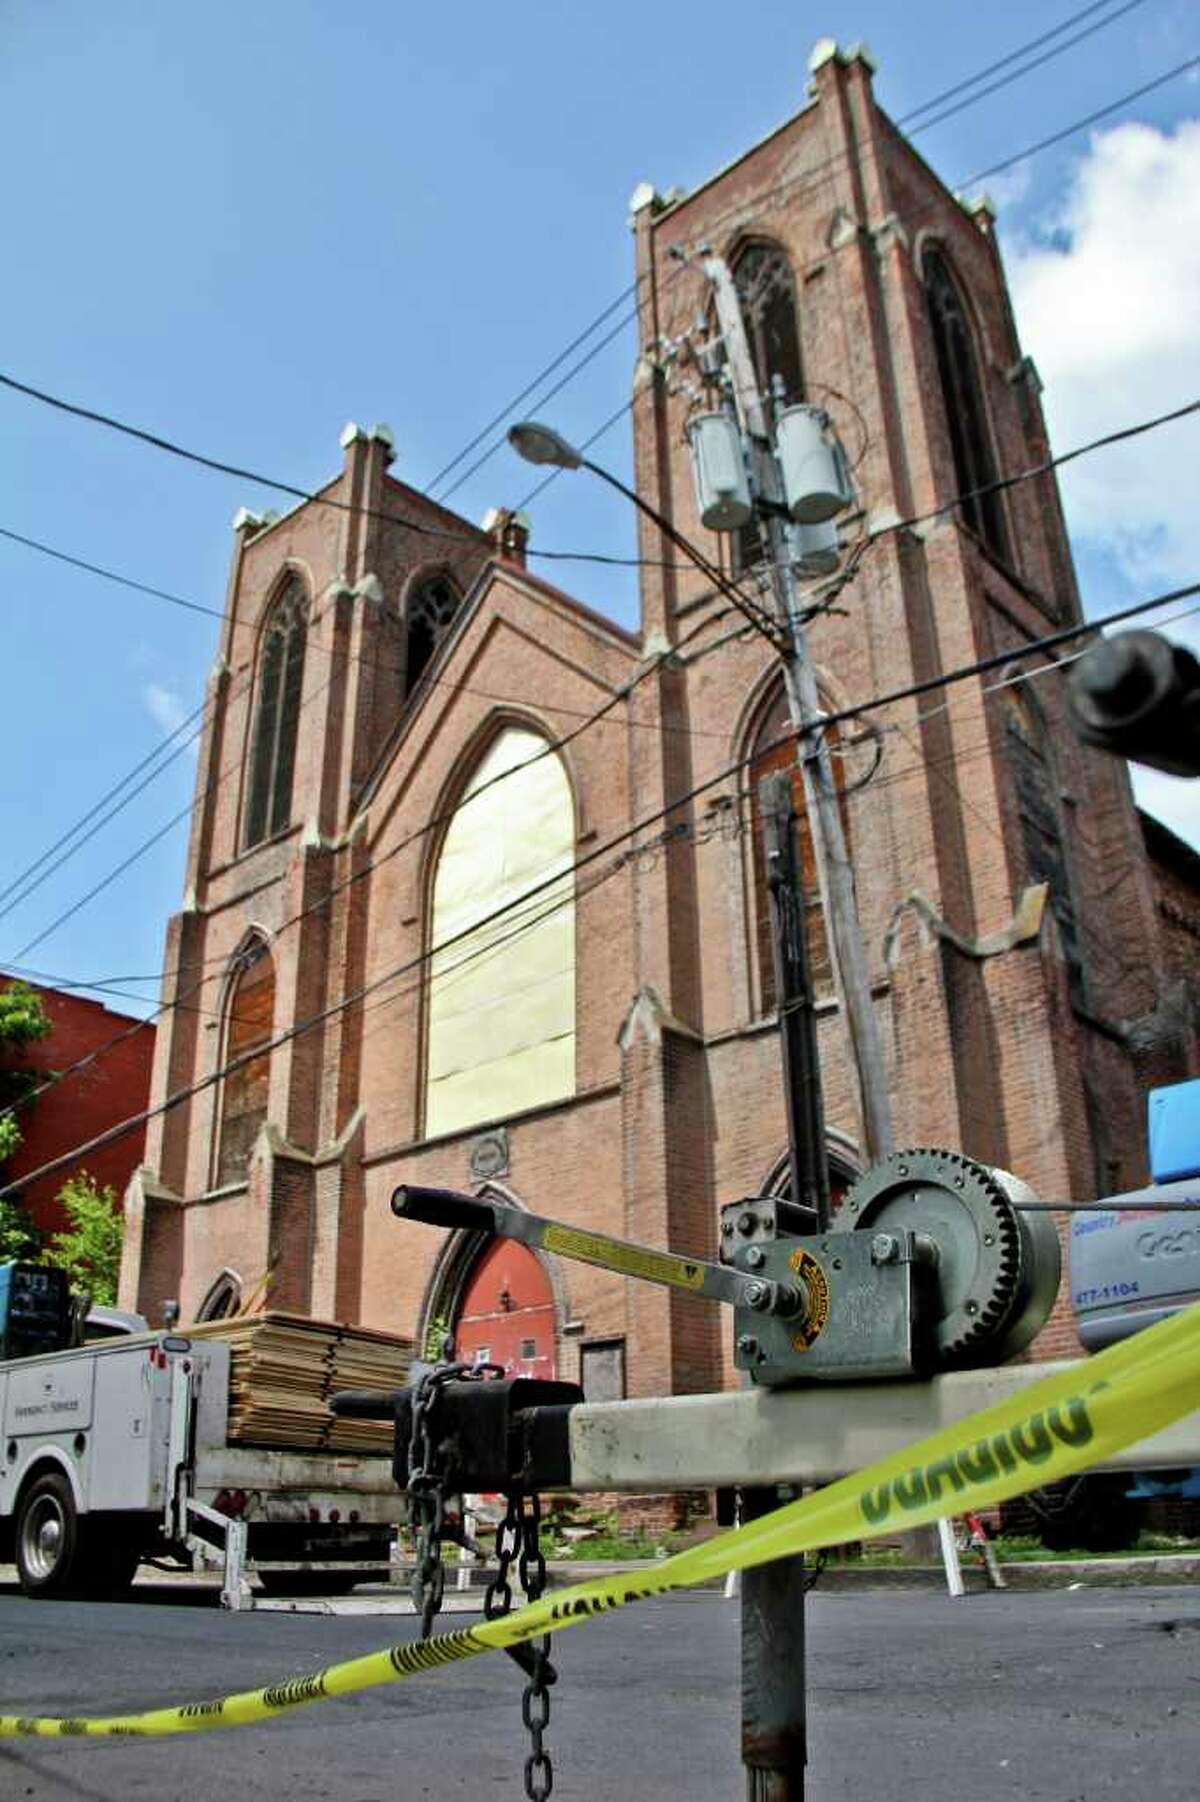 Trinity Church on Trinity Place, Albany, suffered a series of recent structural collapses. Crews work to get the structure safely down on Tuesday, July 12, 2011. (Erin Colligan / Special To The Times Union)